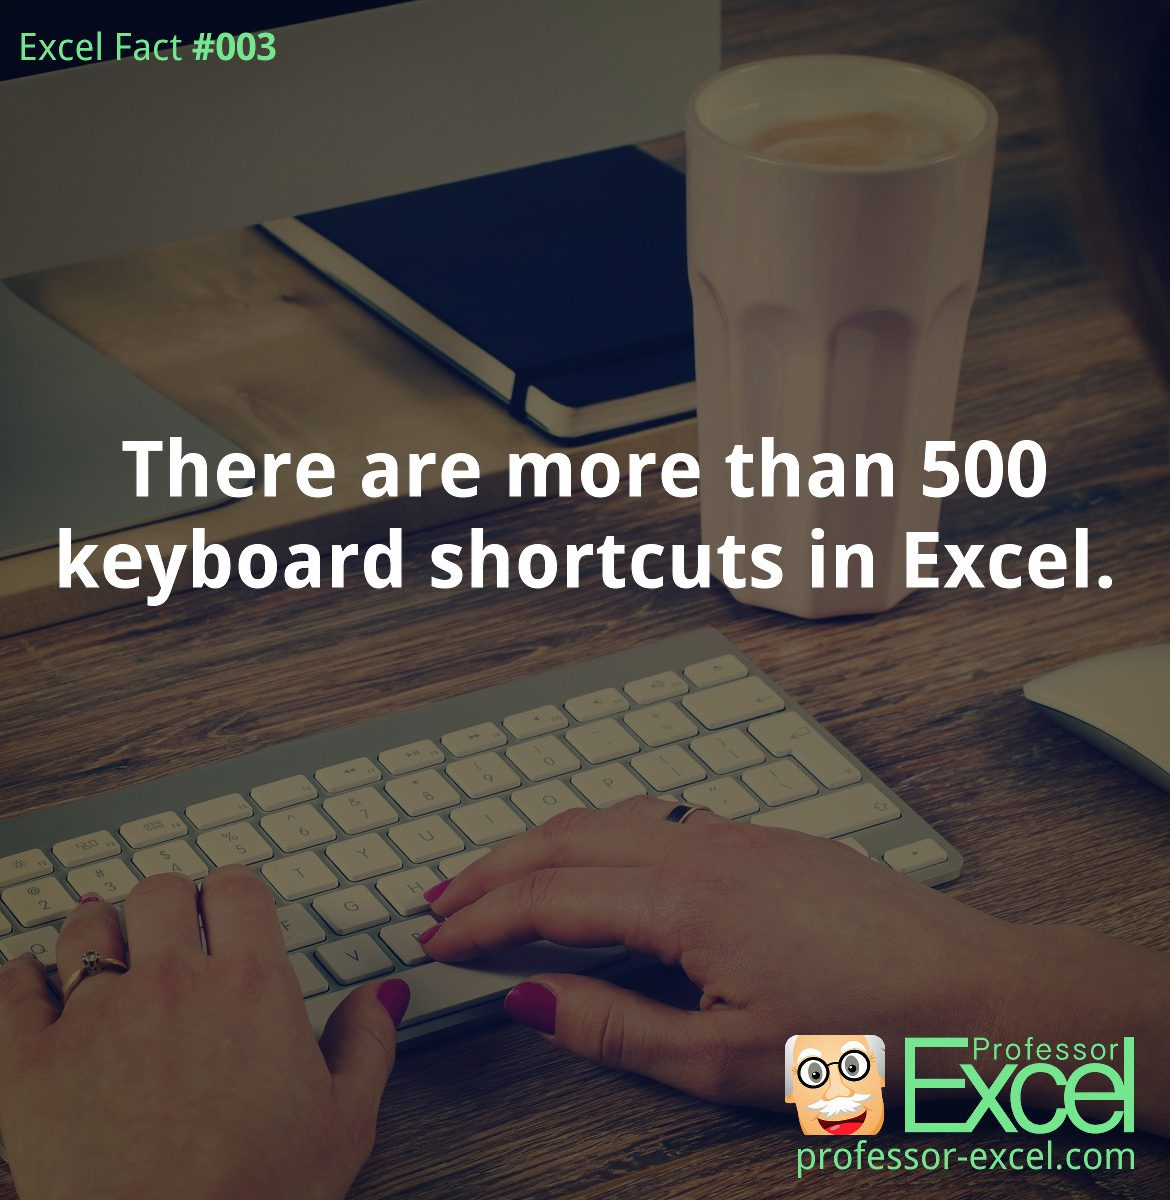 excel, fact, number, shortcuts, keyboard